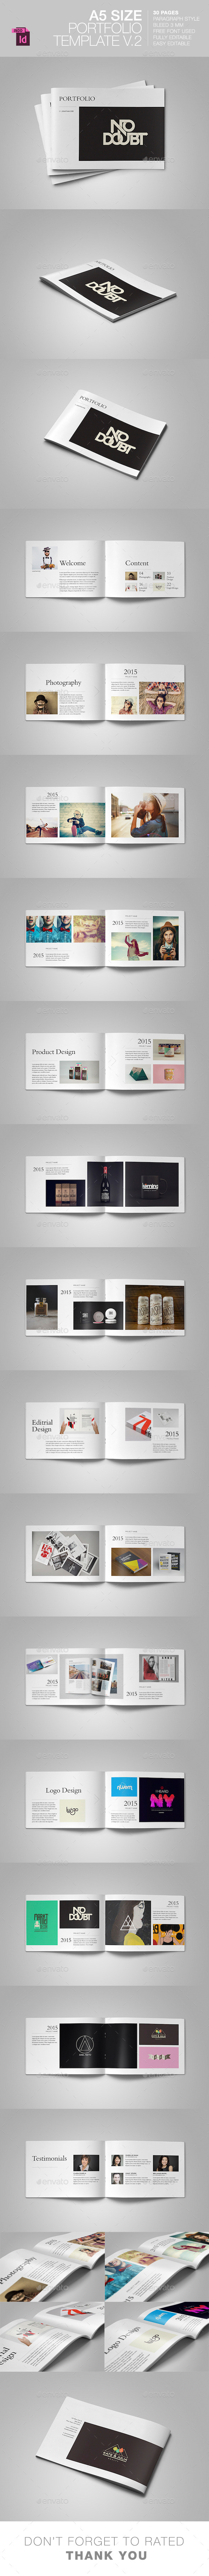 GraphicRiver A5 Portfolio Template V.2 11097371